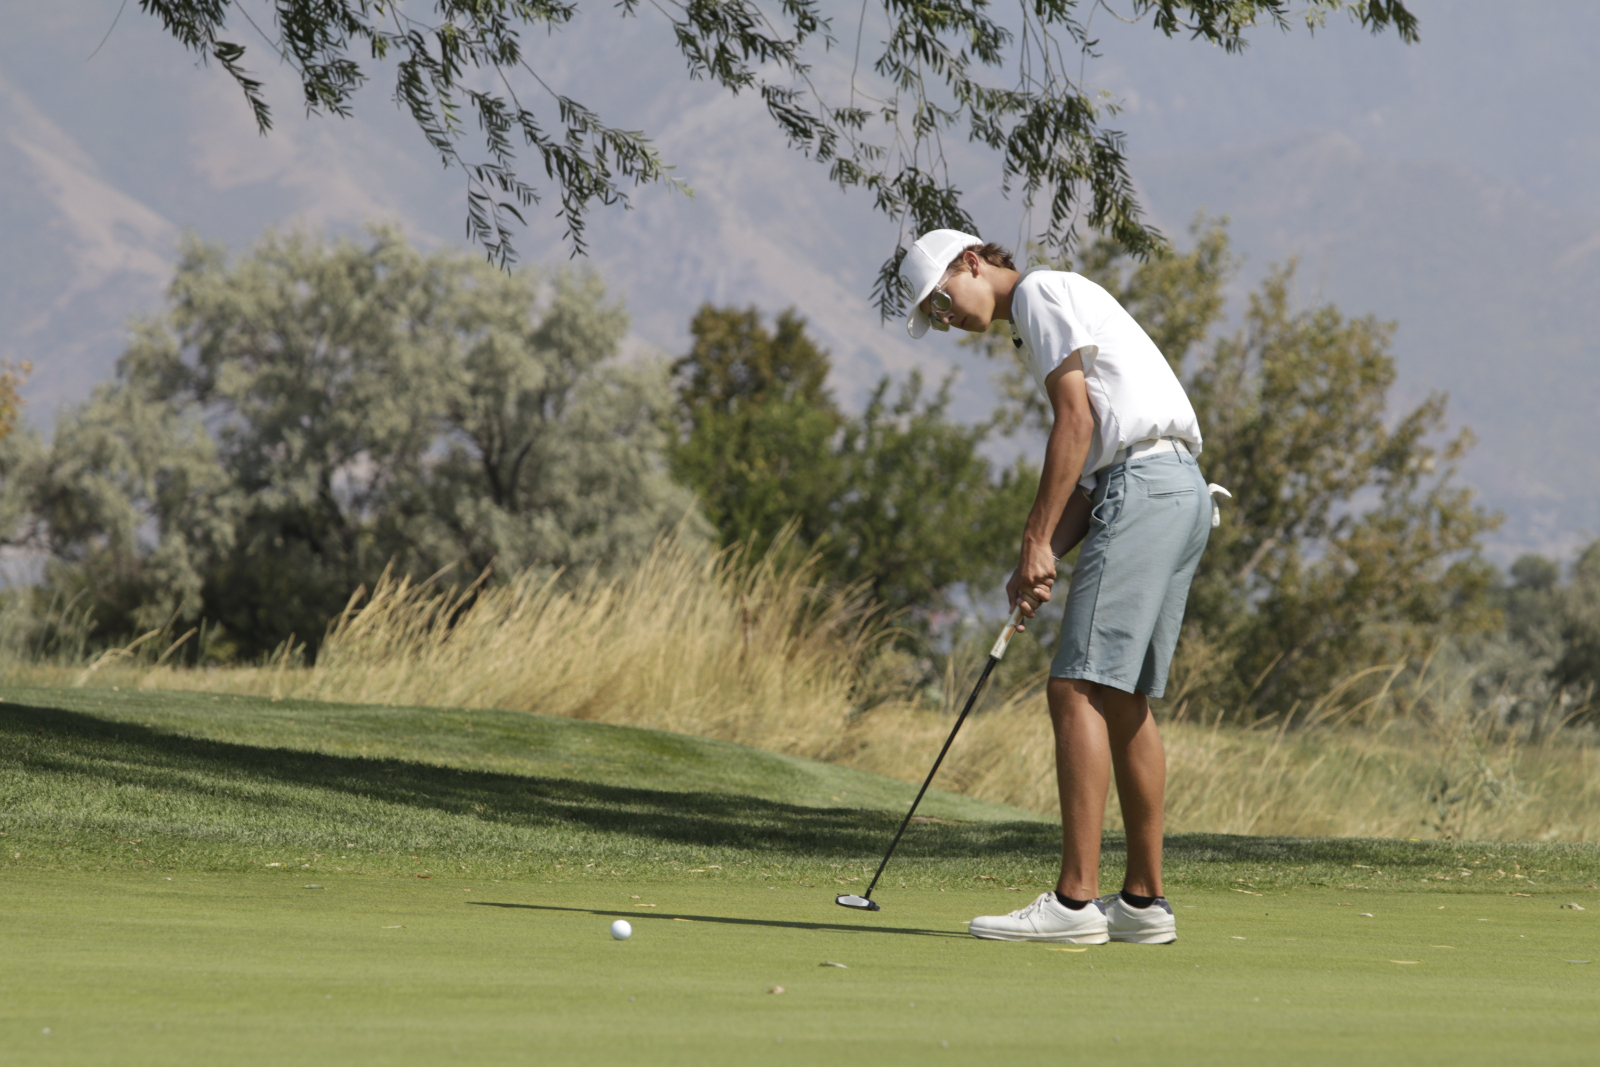 Brighton tees off at Bonneville on Aug. 31